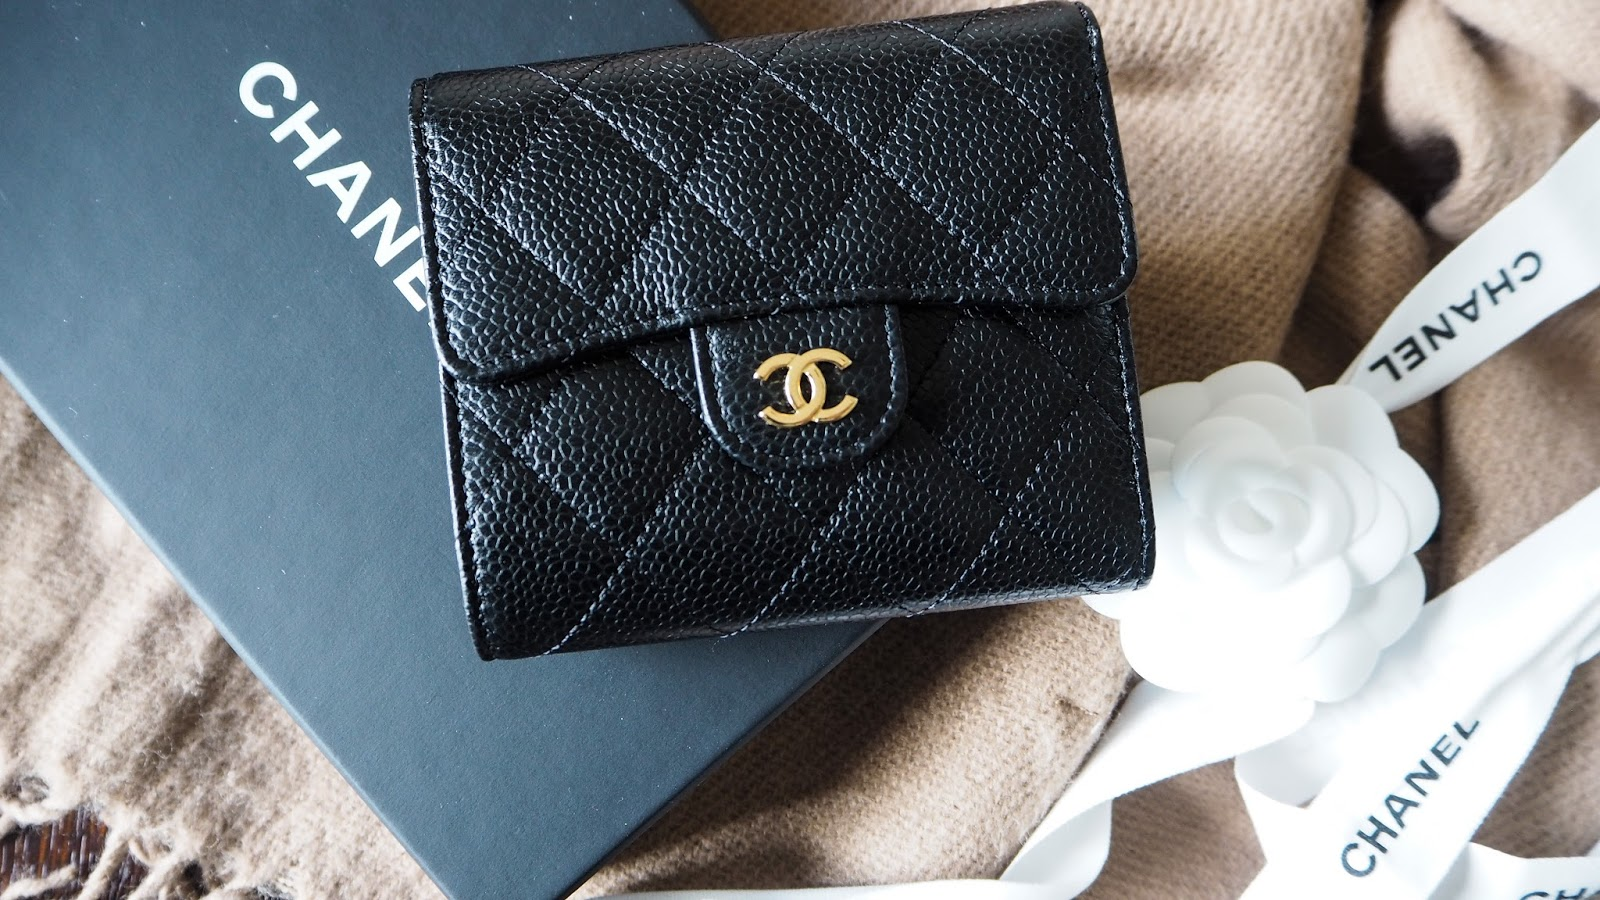 Paris City Guide - Where to Shop - Chanel Purse